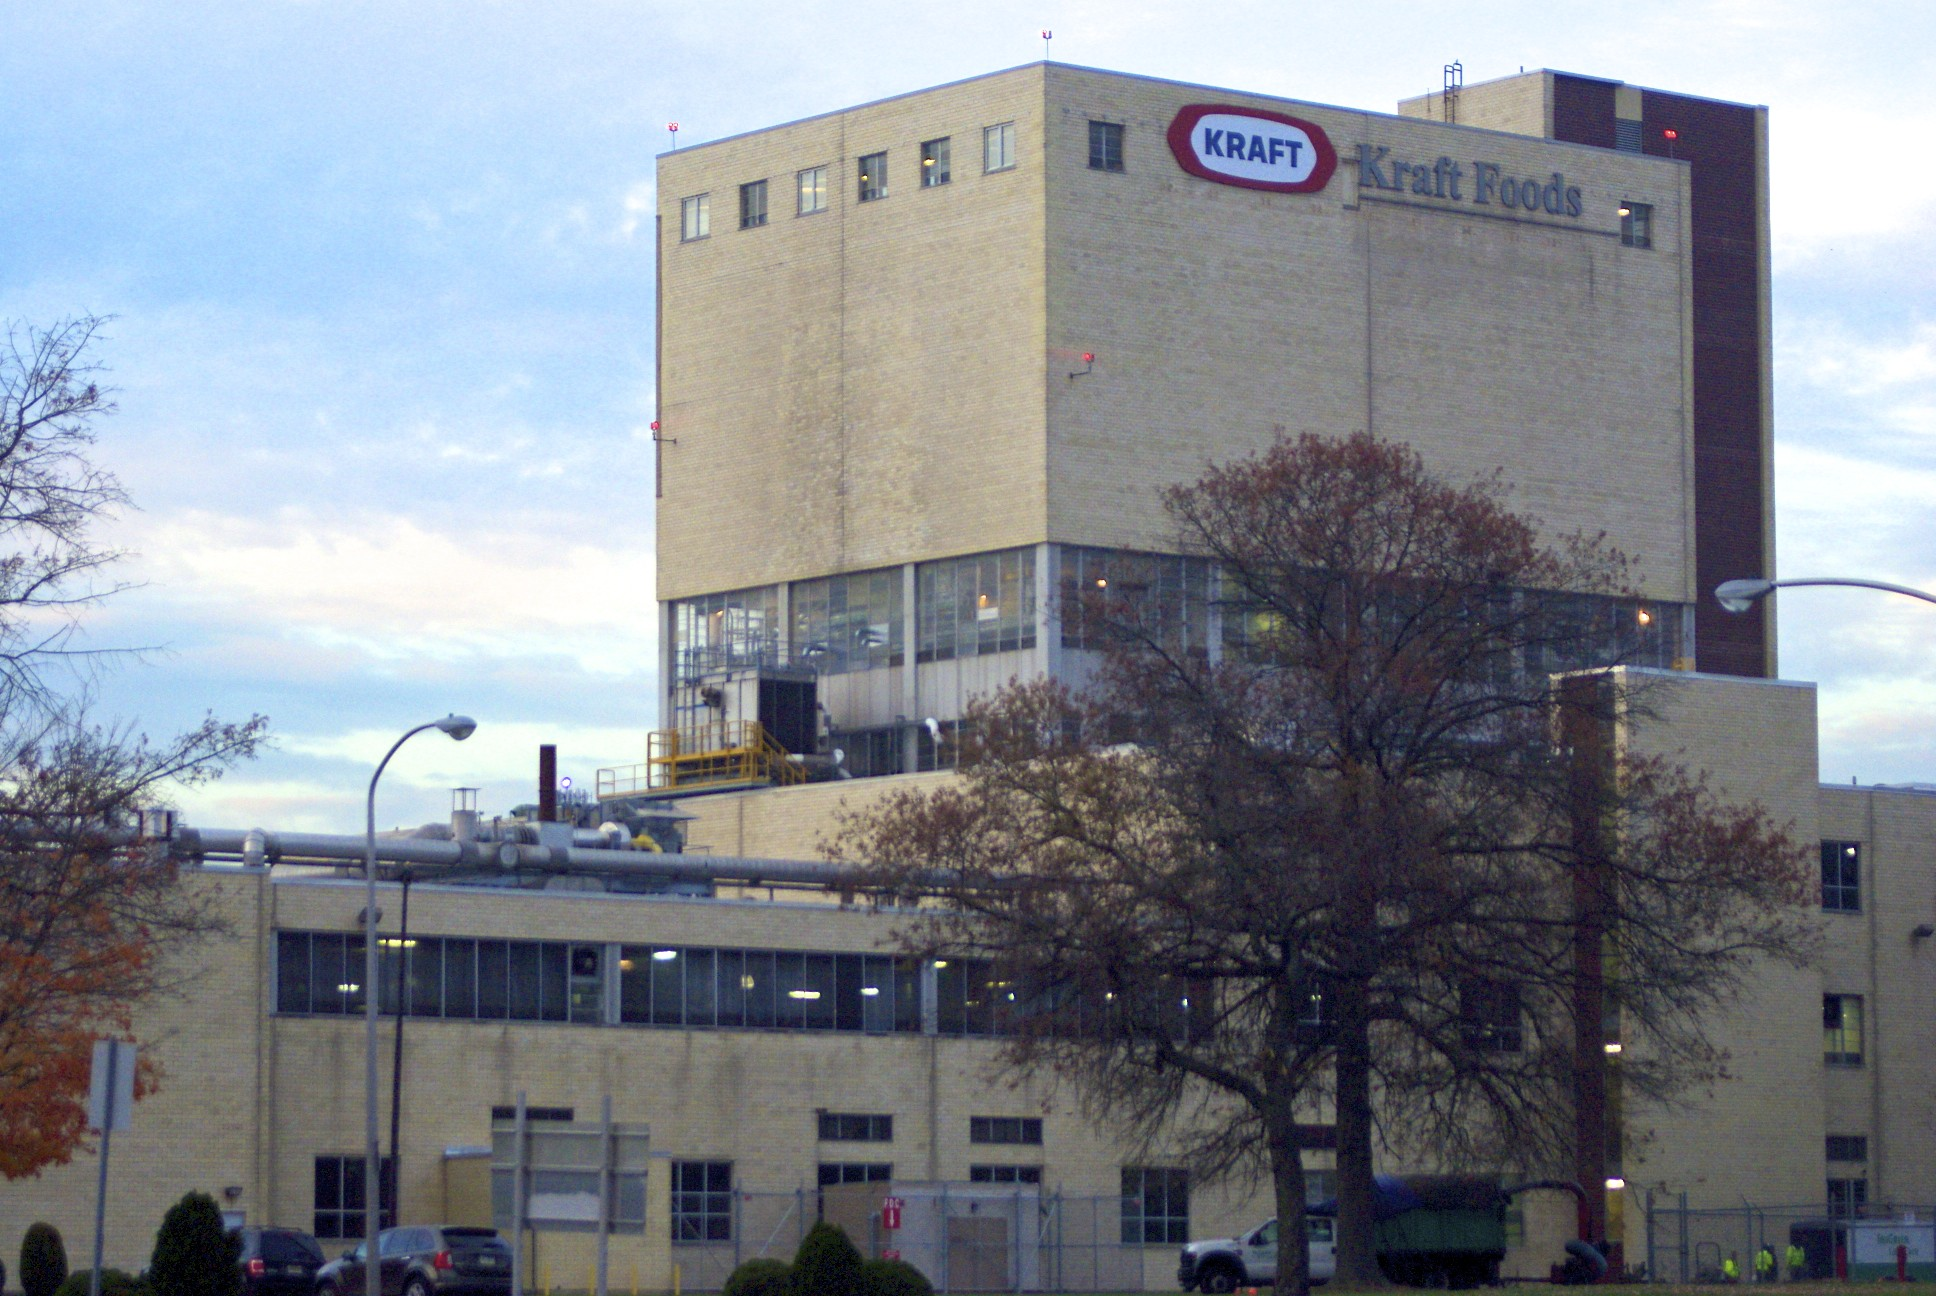 Mondelez International announced the possible closing of the former Nabisco factory, which currently provides about 300 jobs.